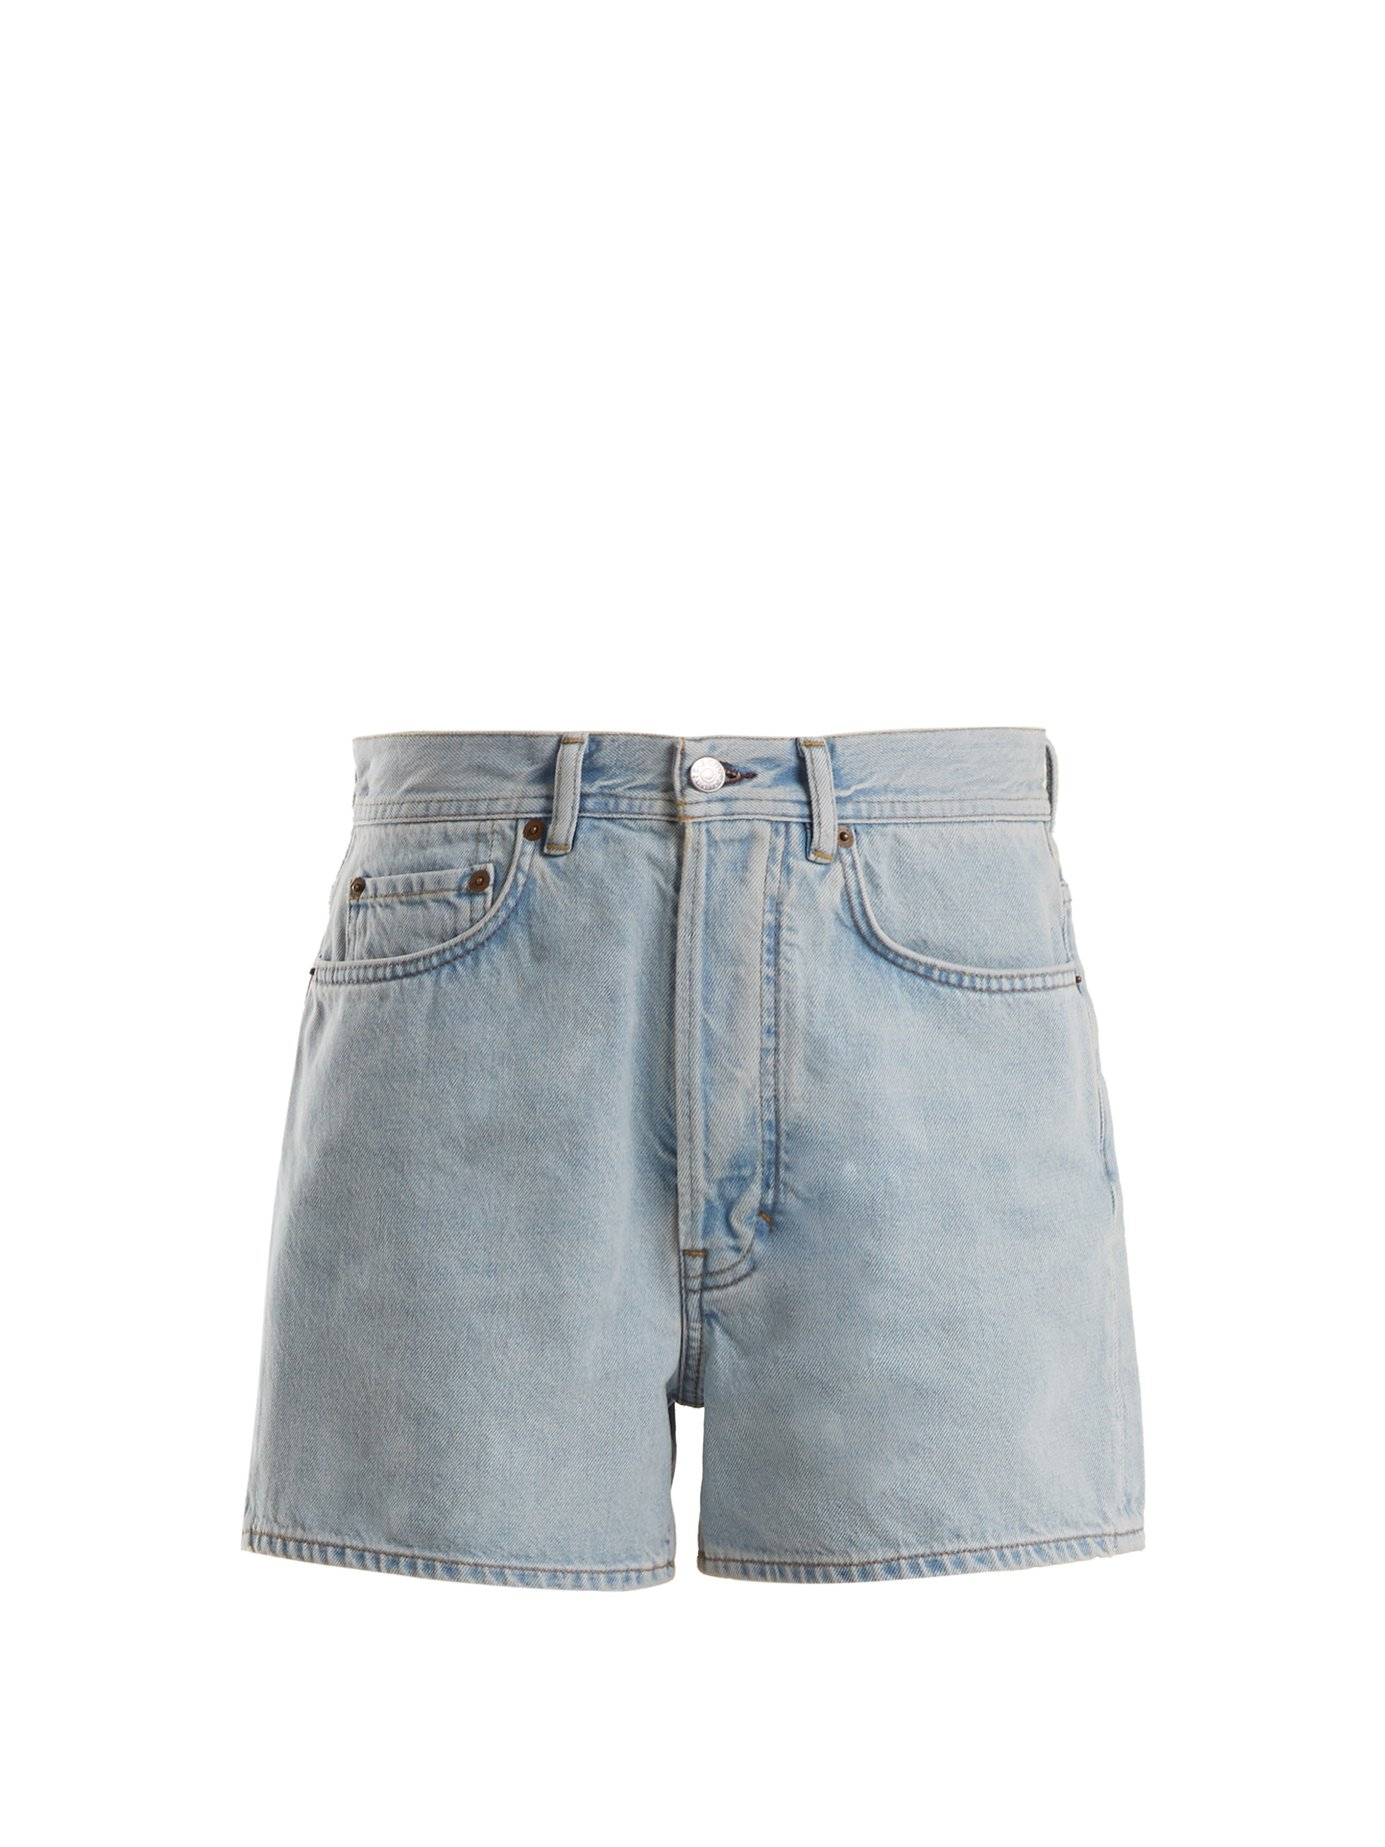 acne_studios_denim_shorts.jpg